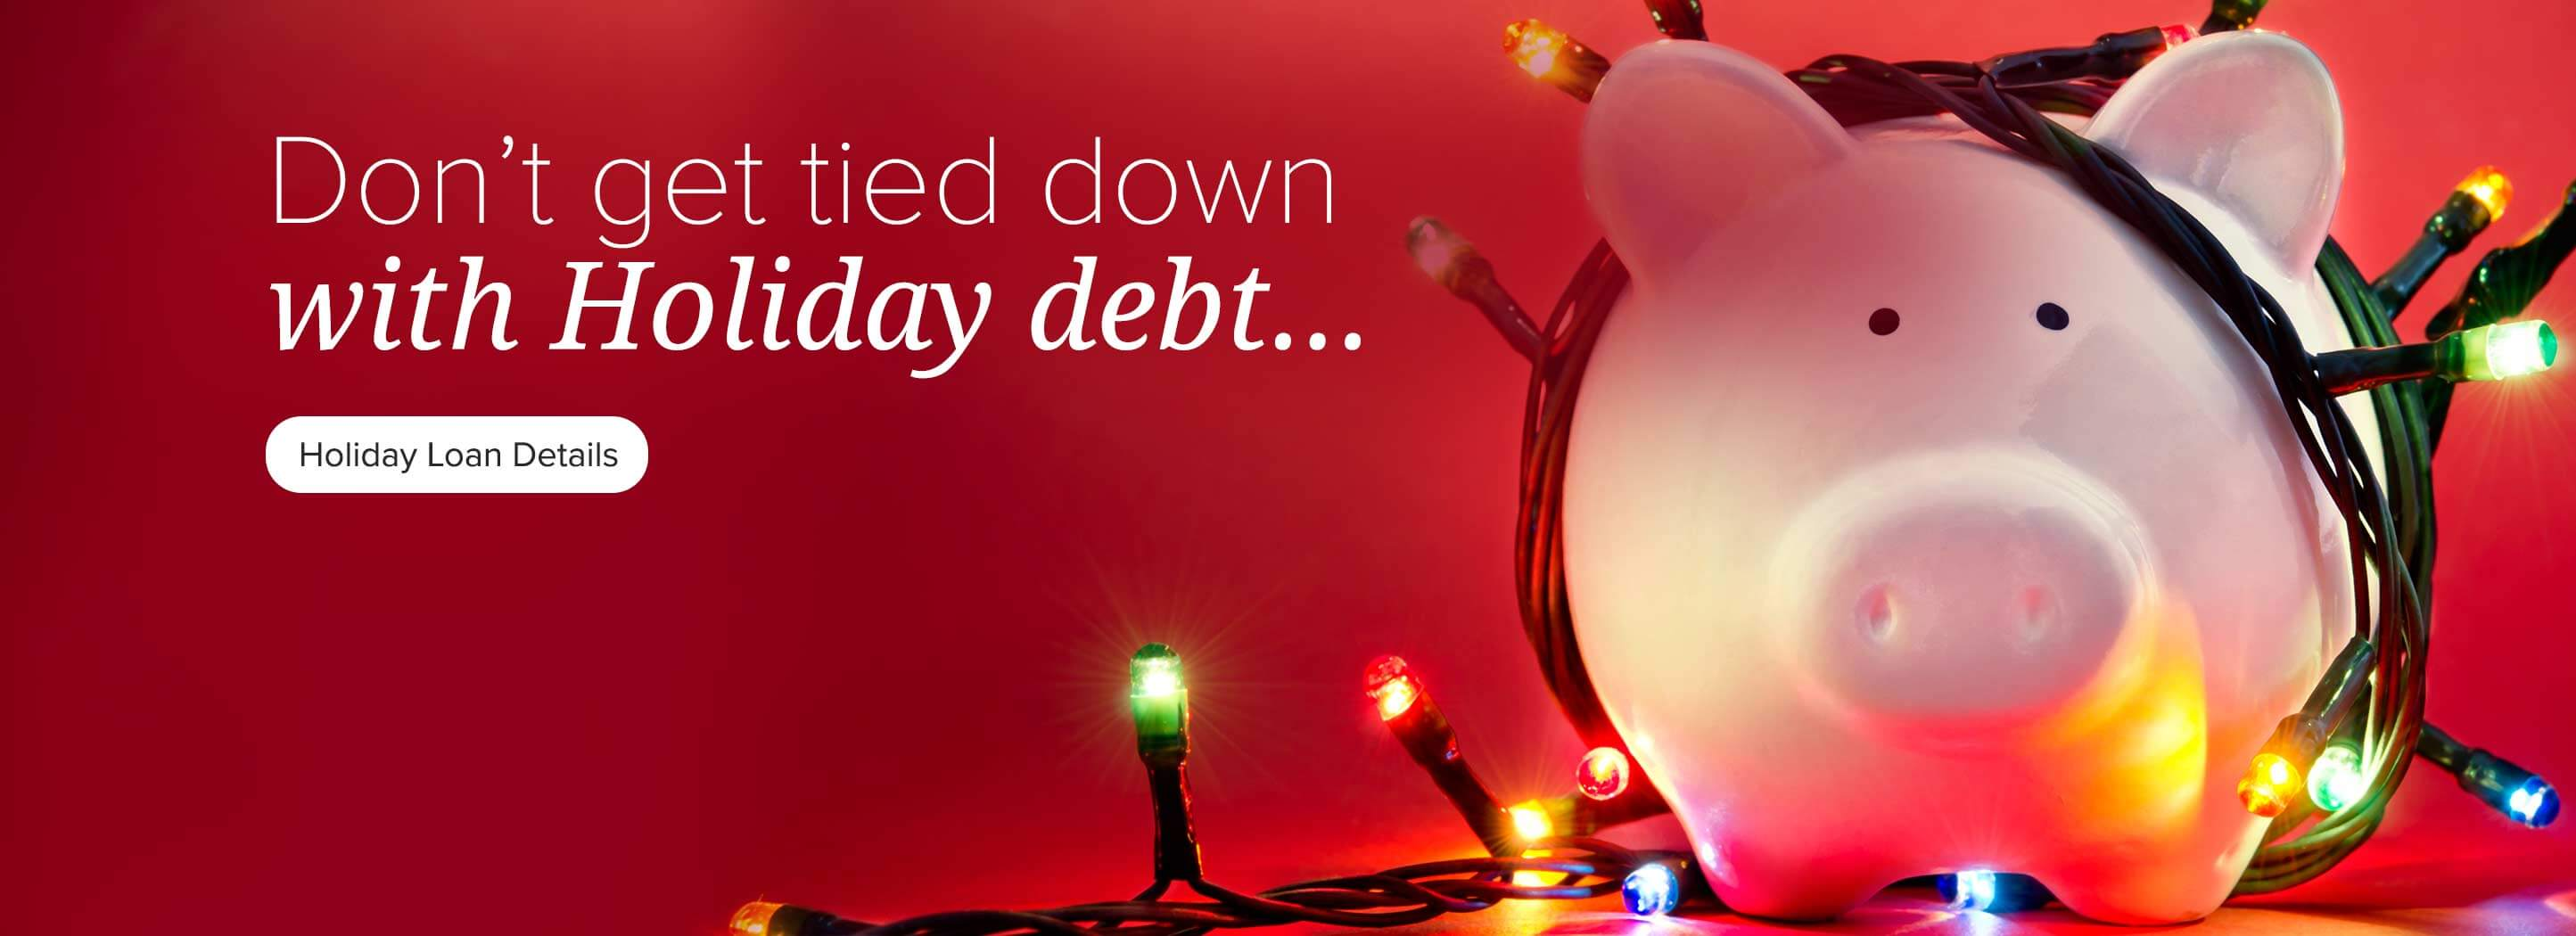 Don't get tied down with Holiday debt... Holiday Loan details